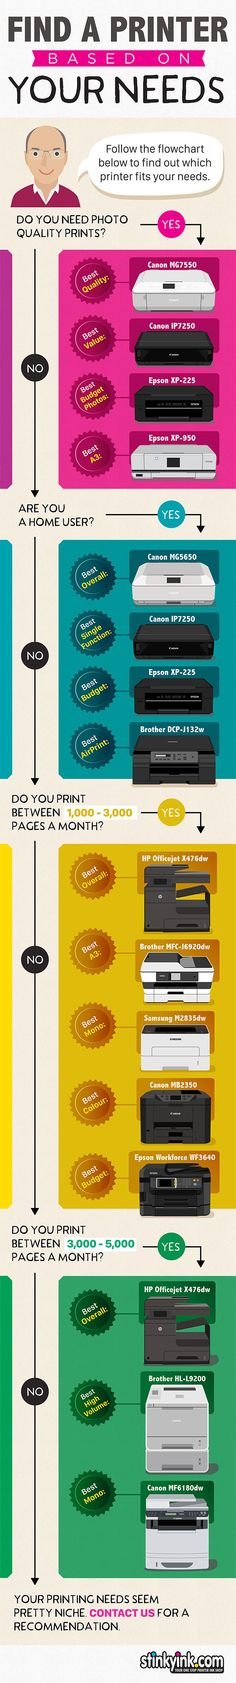 Find A Printer Based On Your Needs